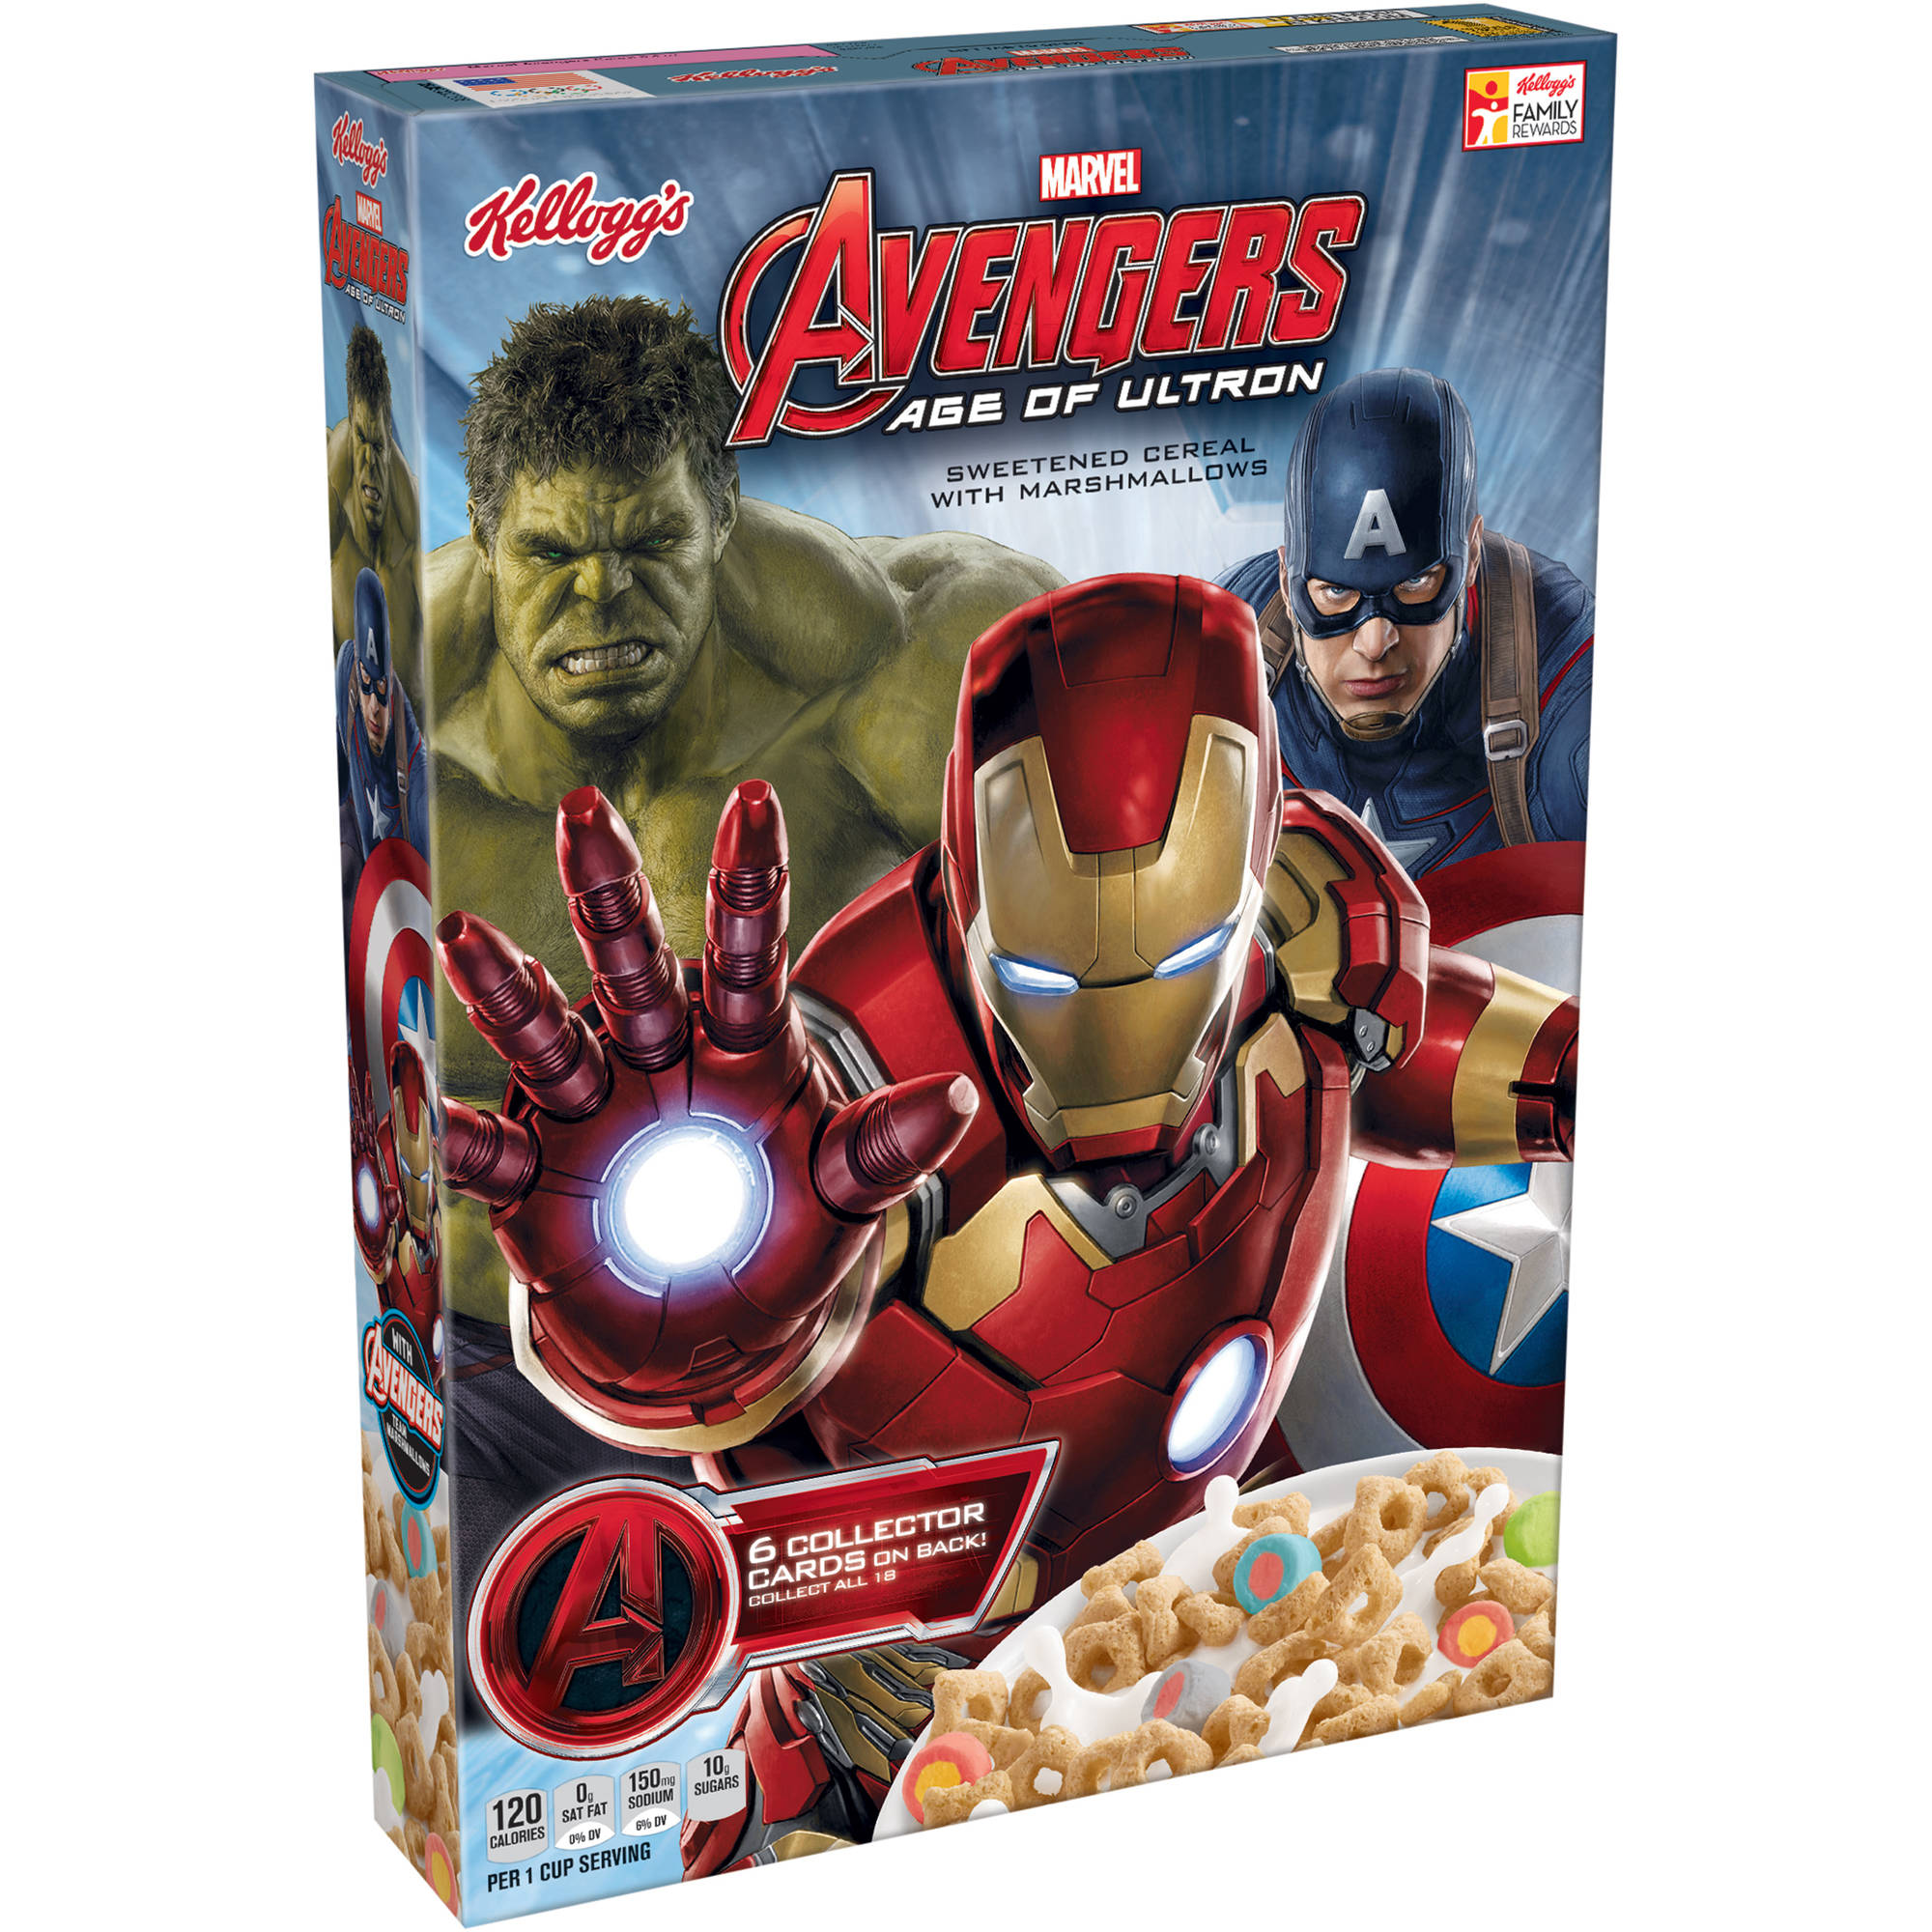 Kellogg's Marvel Avengers Age of Ultron Cereal, 8.4 oz